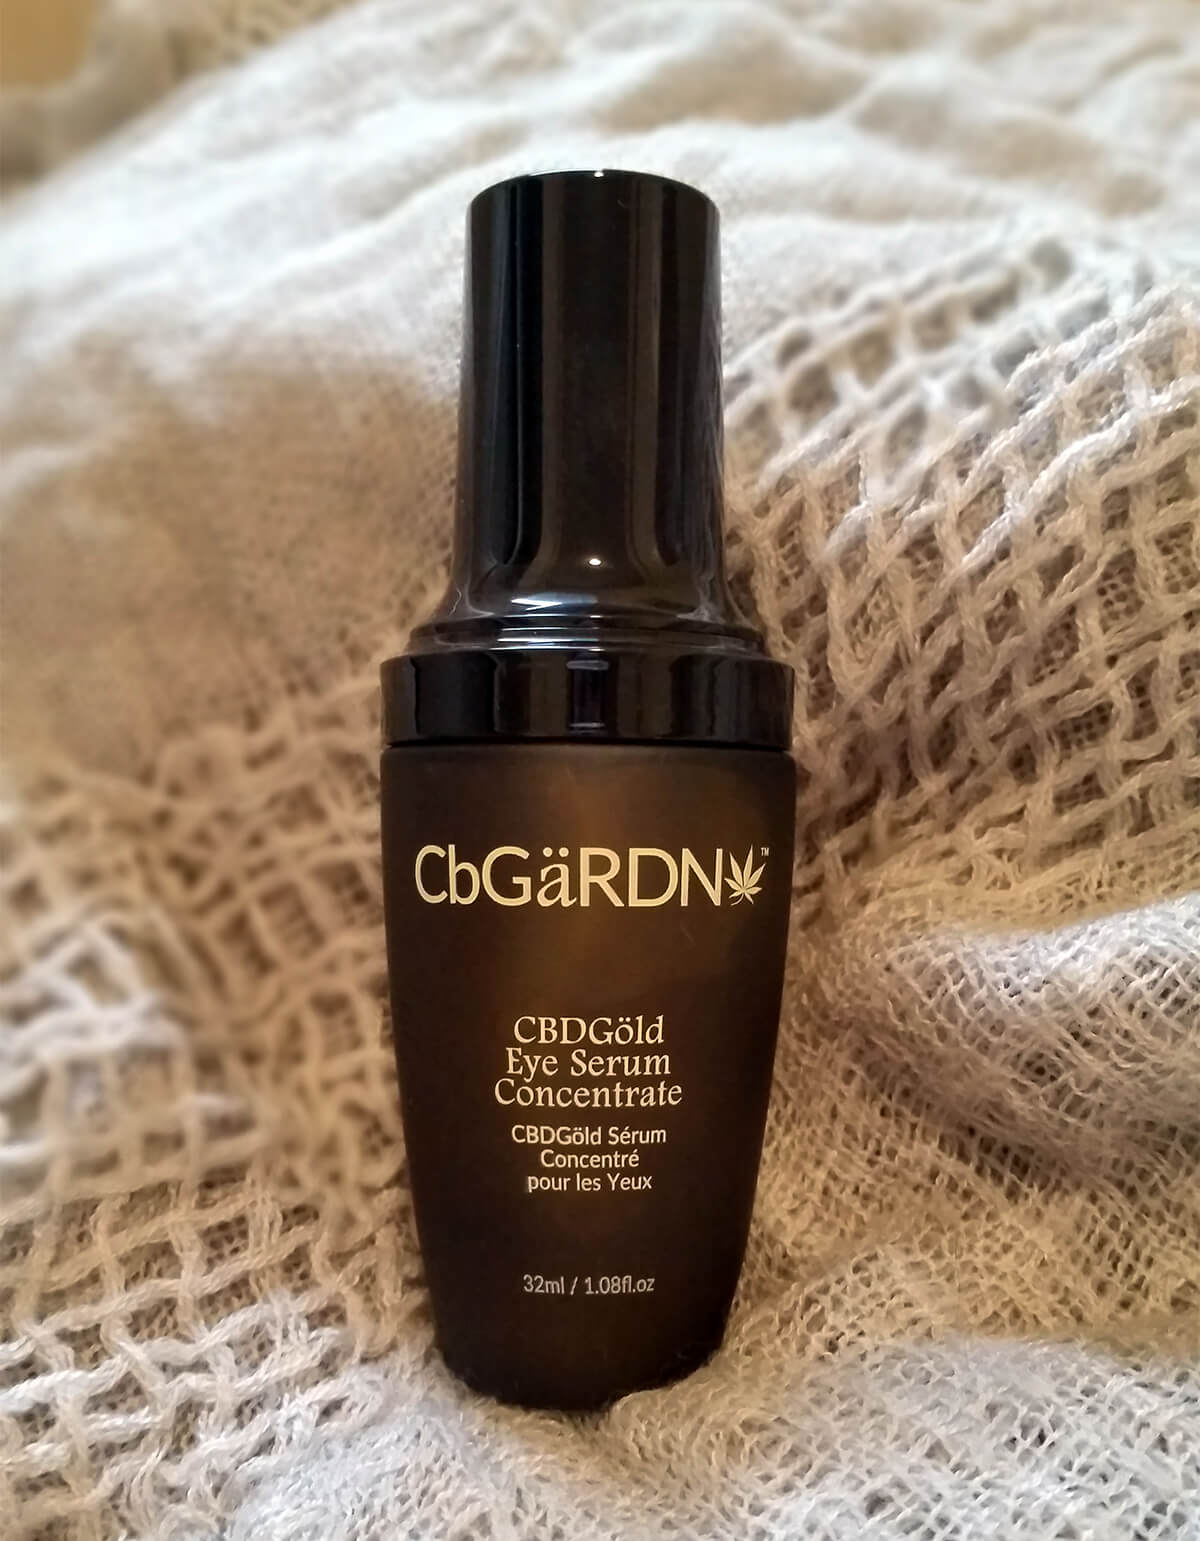 CBDGold Eye Serum Concentrate in bottle on blanket